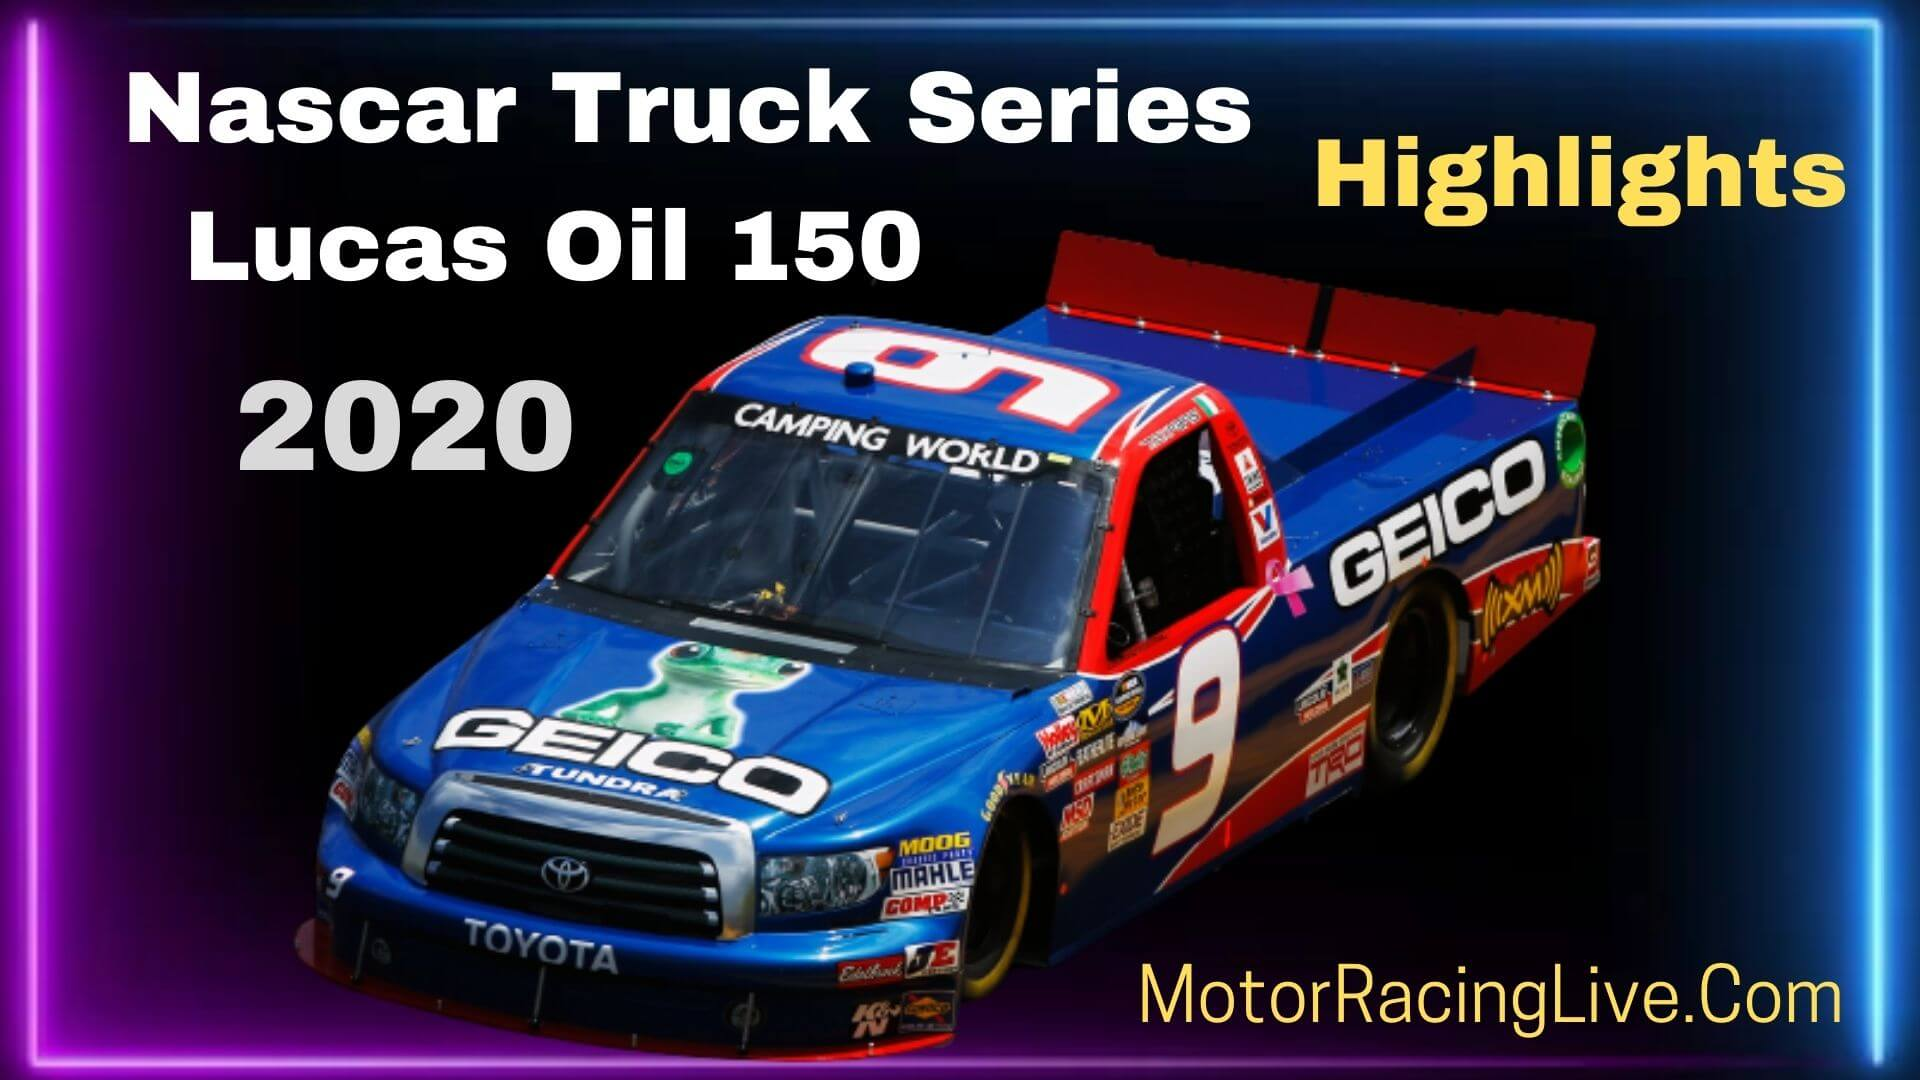 Lucas Oil 150 Highlights Nascar Truck Series 2020